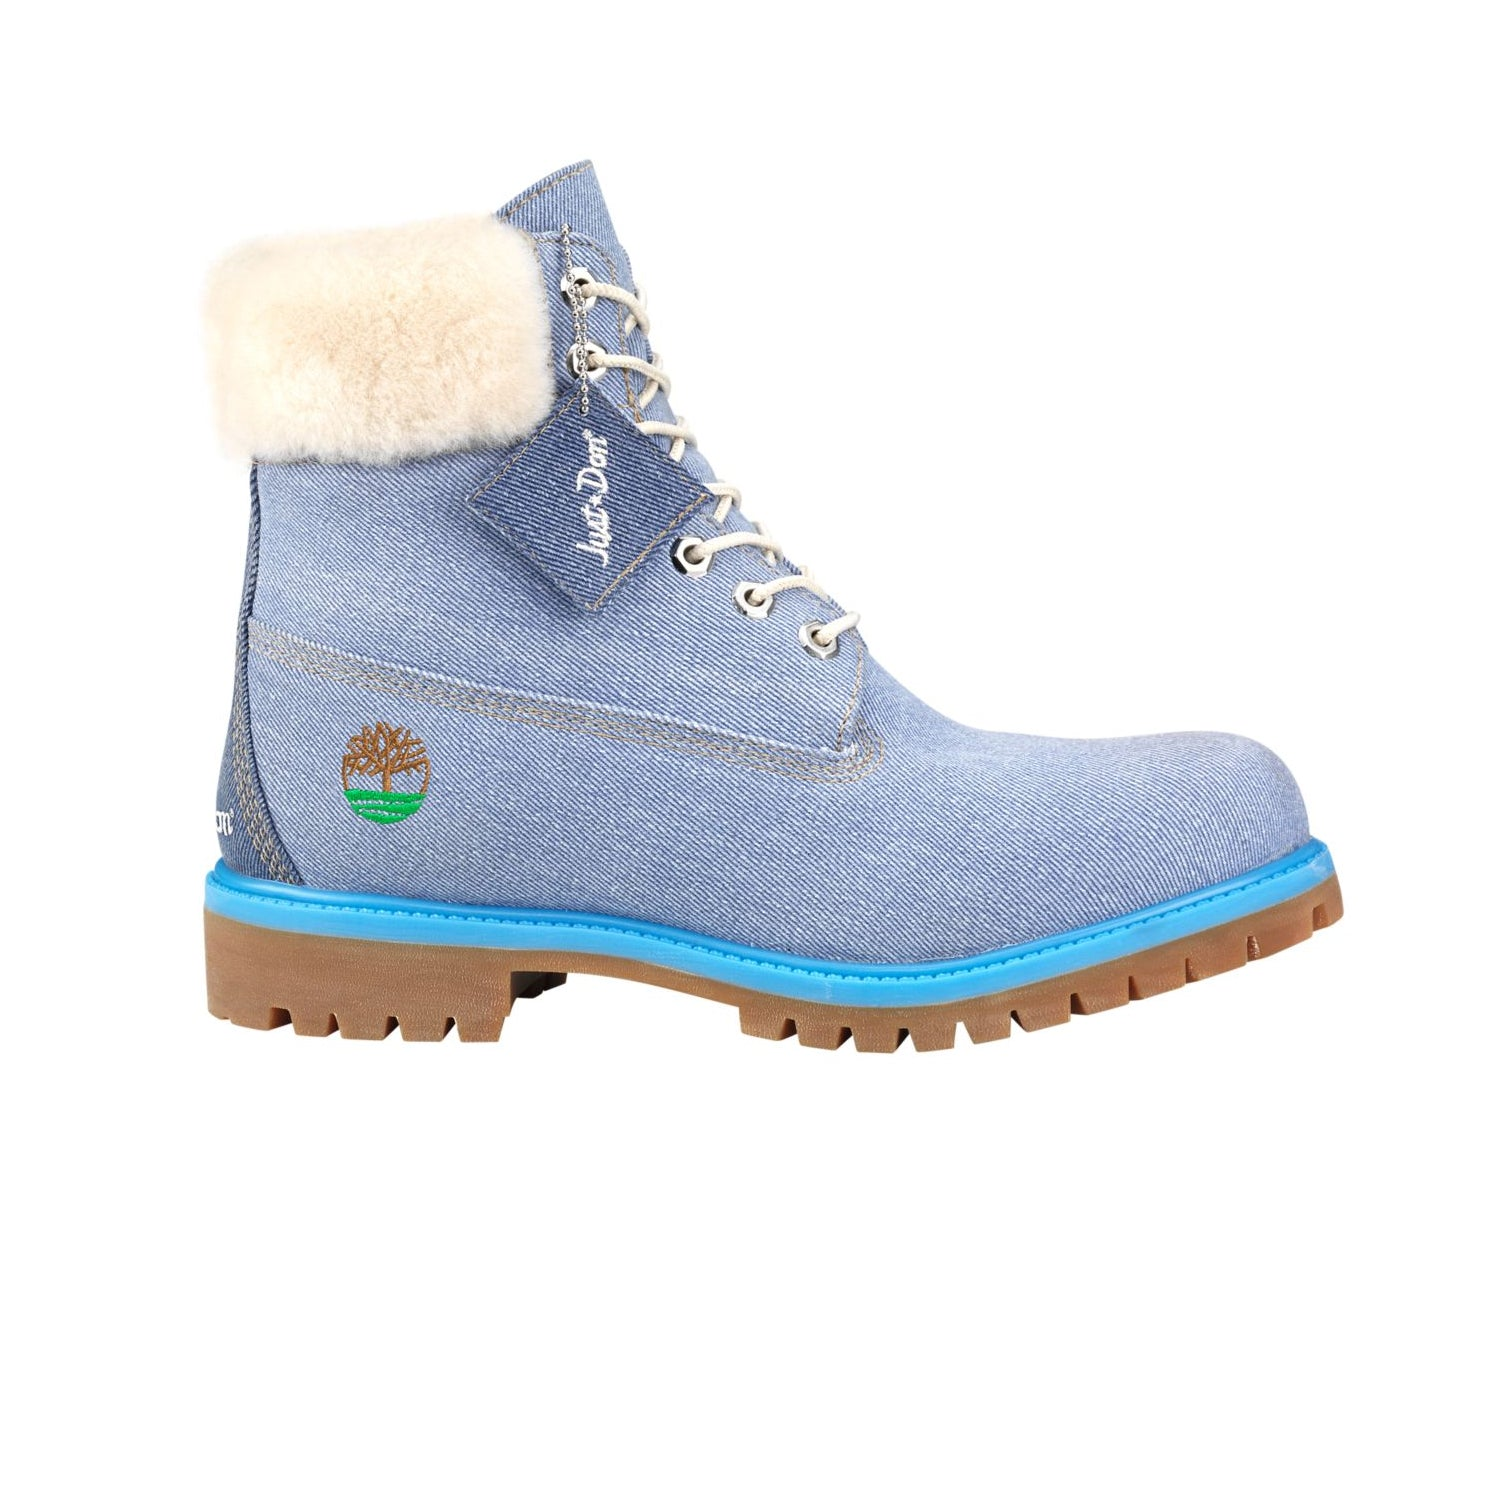 JUST DON X TIMBERLAND DENIM 6 INCH BOOT